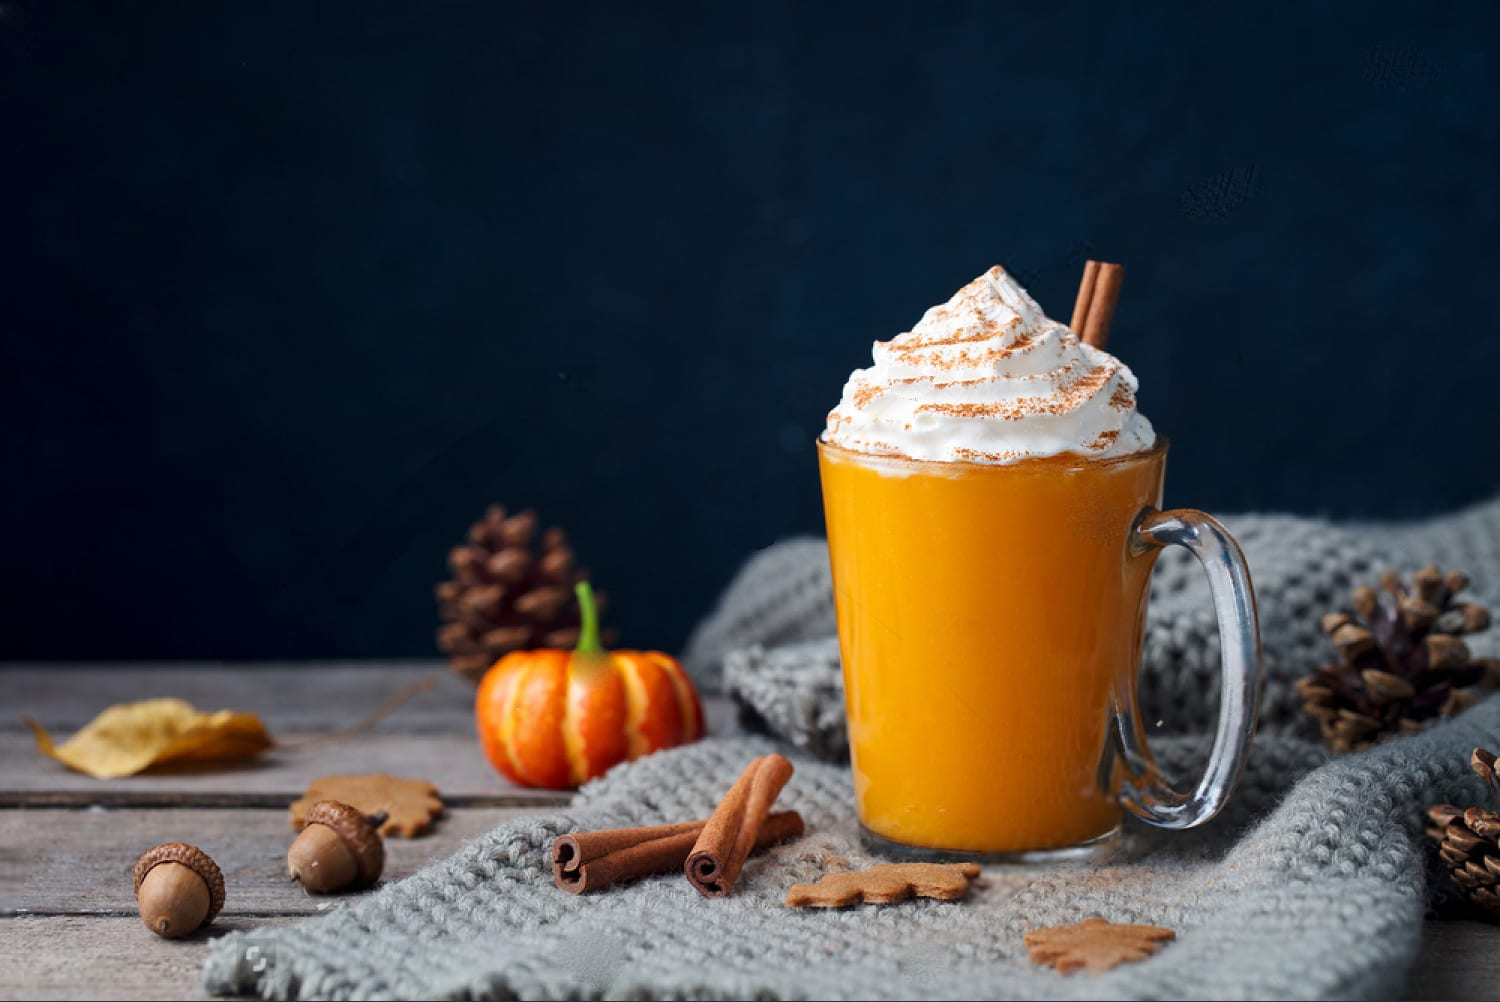 It May Be A Fall Favorite, But Here's Why You Need To Stop Drinking Pumpkin Spiced Lattes